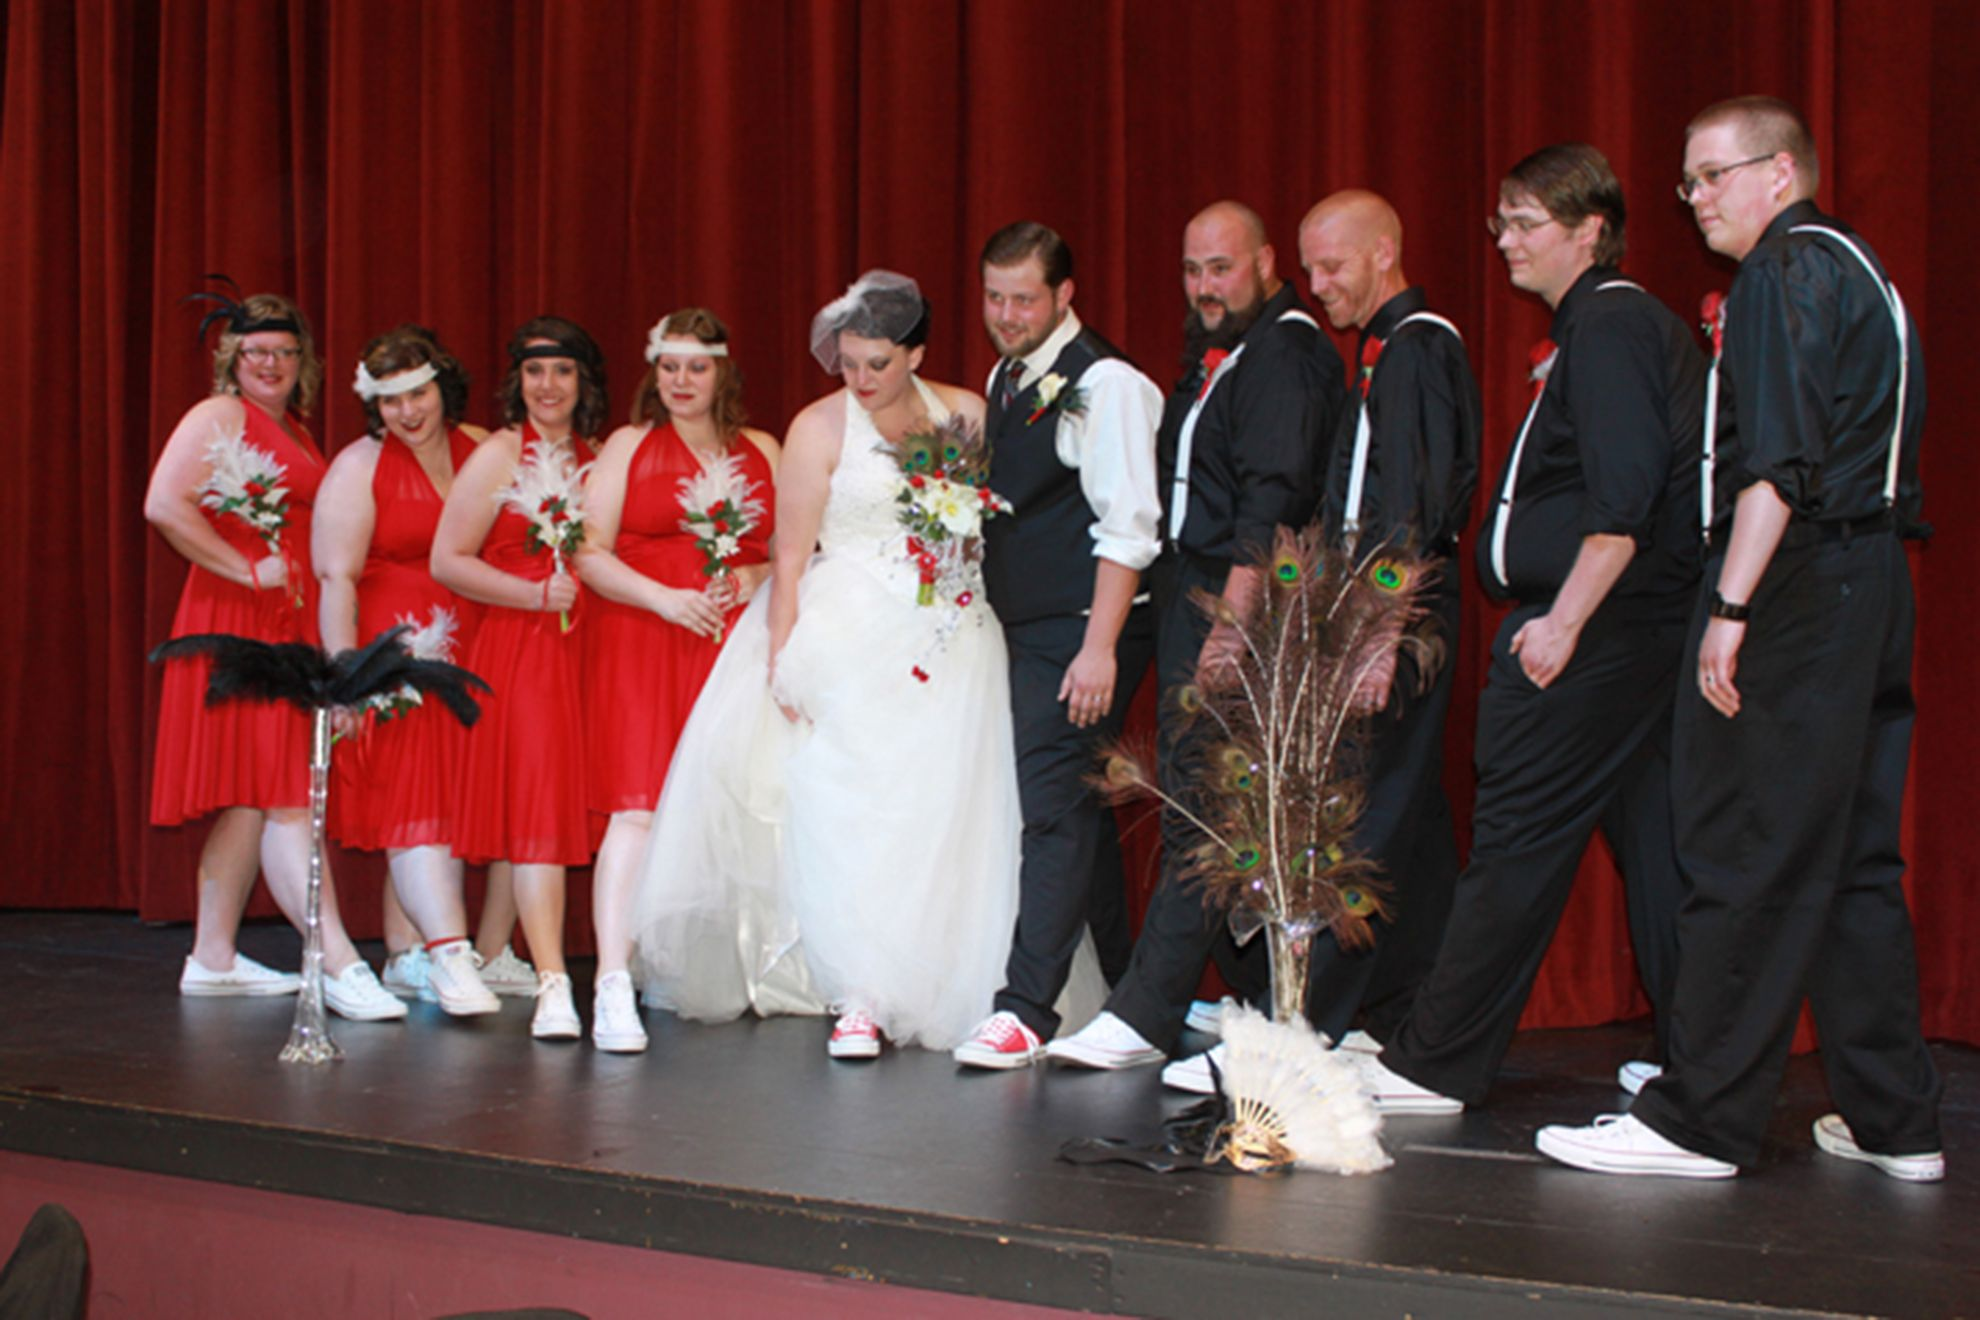 Bride and groom and wedding party showing off Converse shoes on stage at  red 9d9b74abc